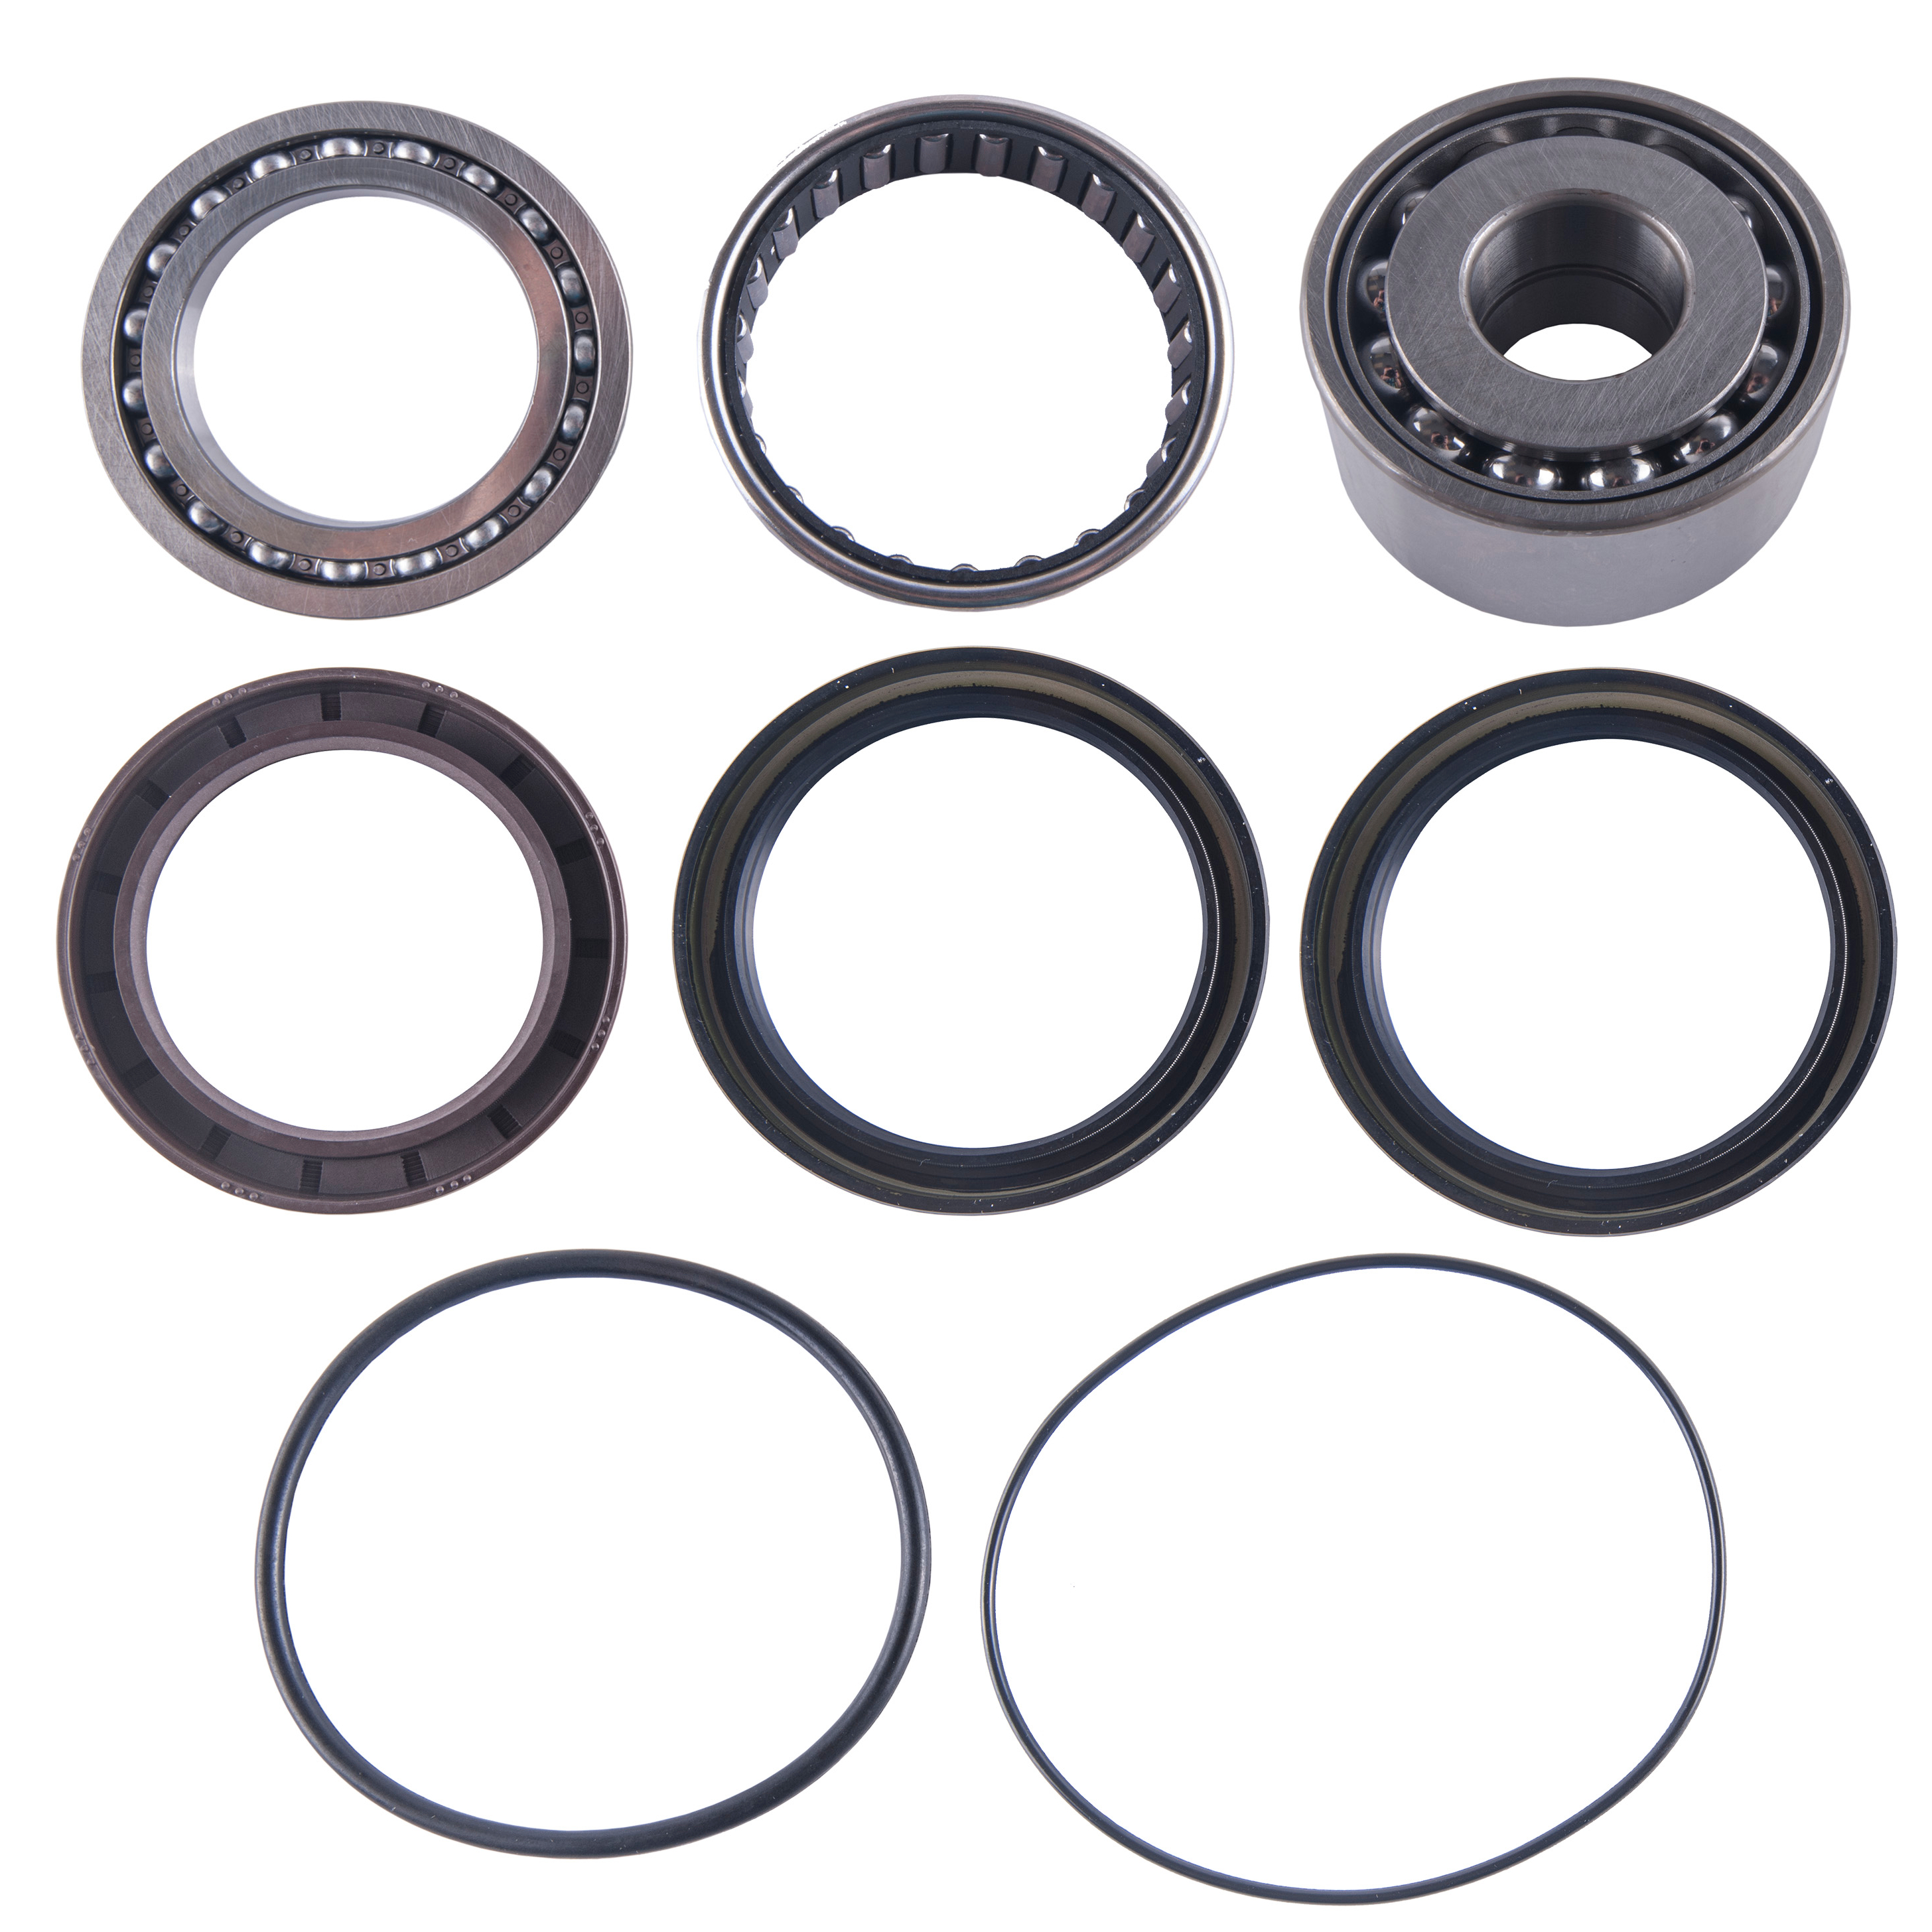 Yamaha rear differential seal kit 350  450 Grizzly 2007 2008 2009 2010 2011